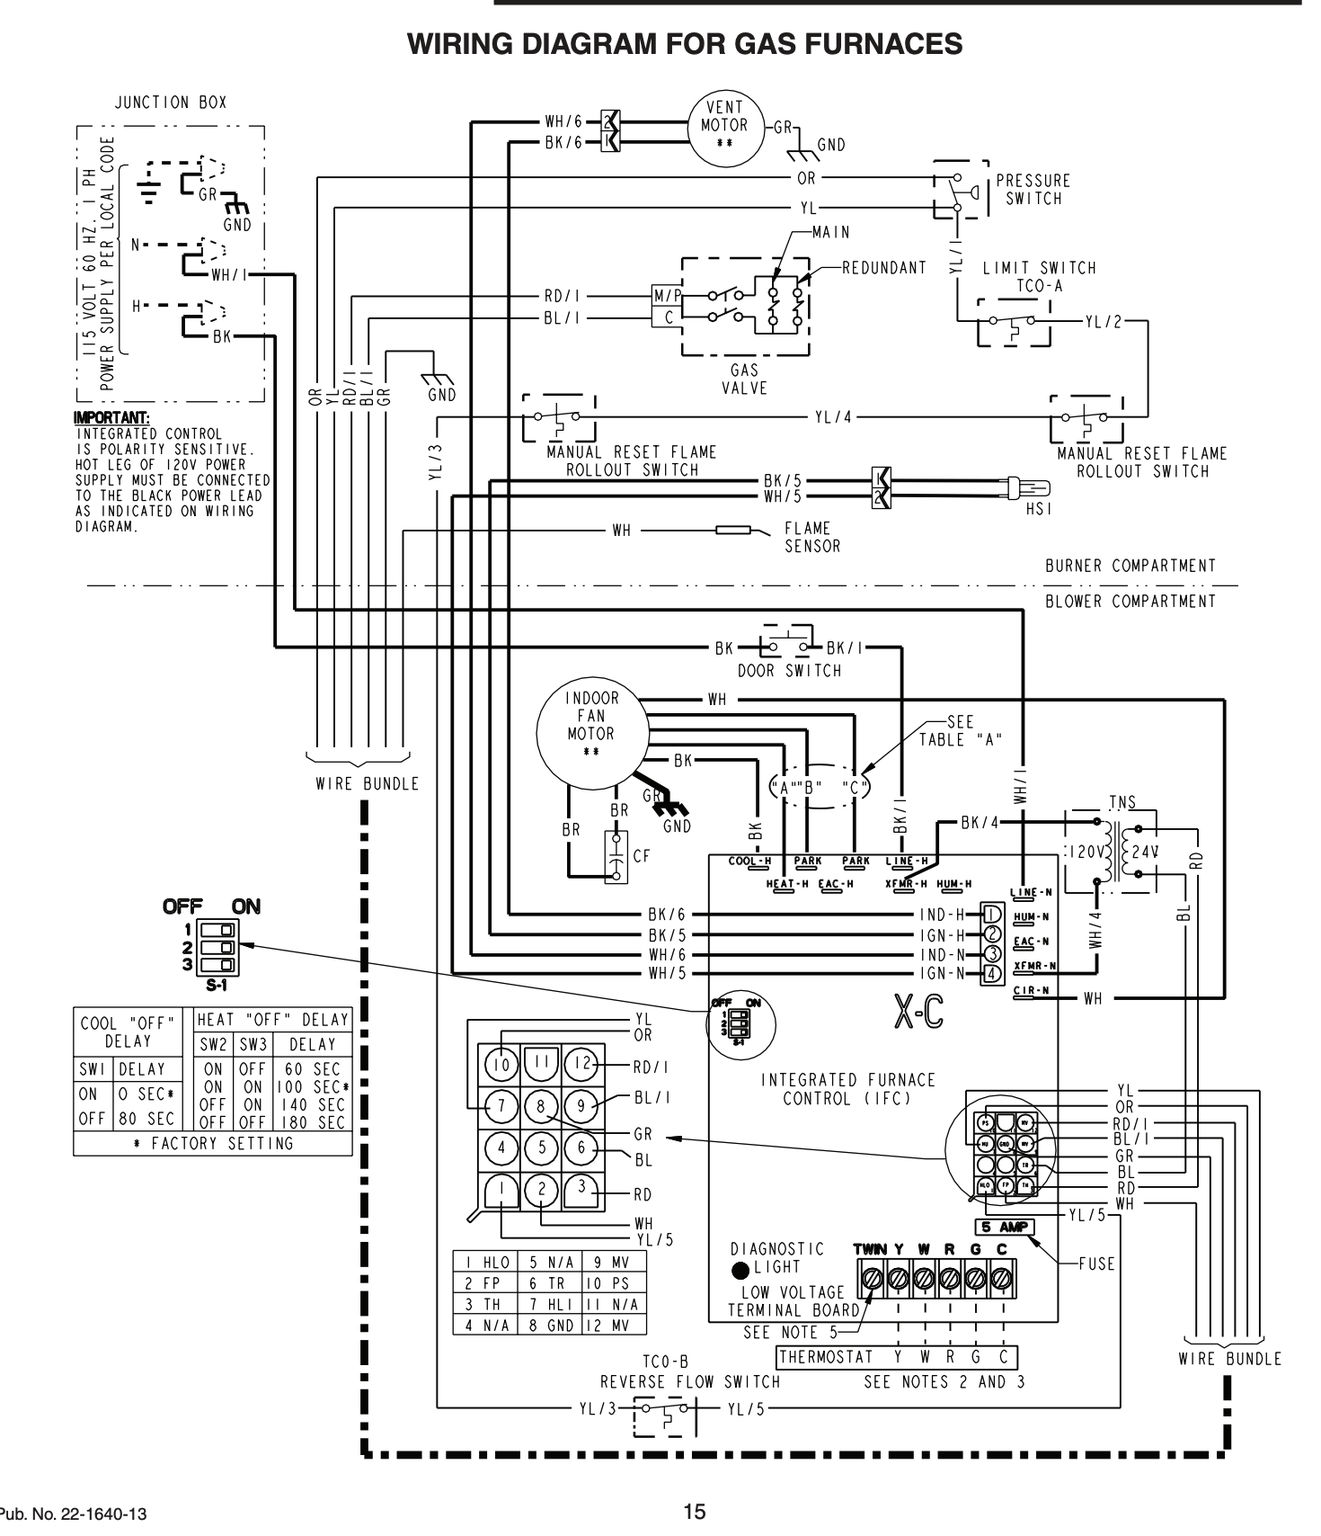 hvac wiring diagram test 94 ford taurus fan and limit switch q anda 5 furnace control